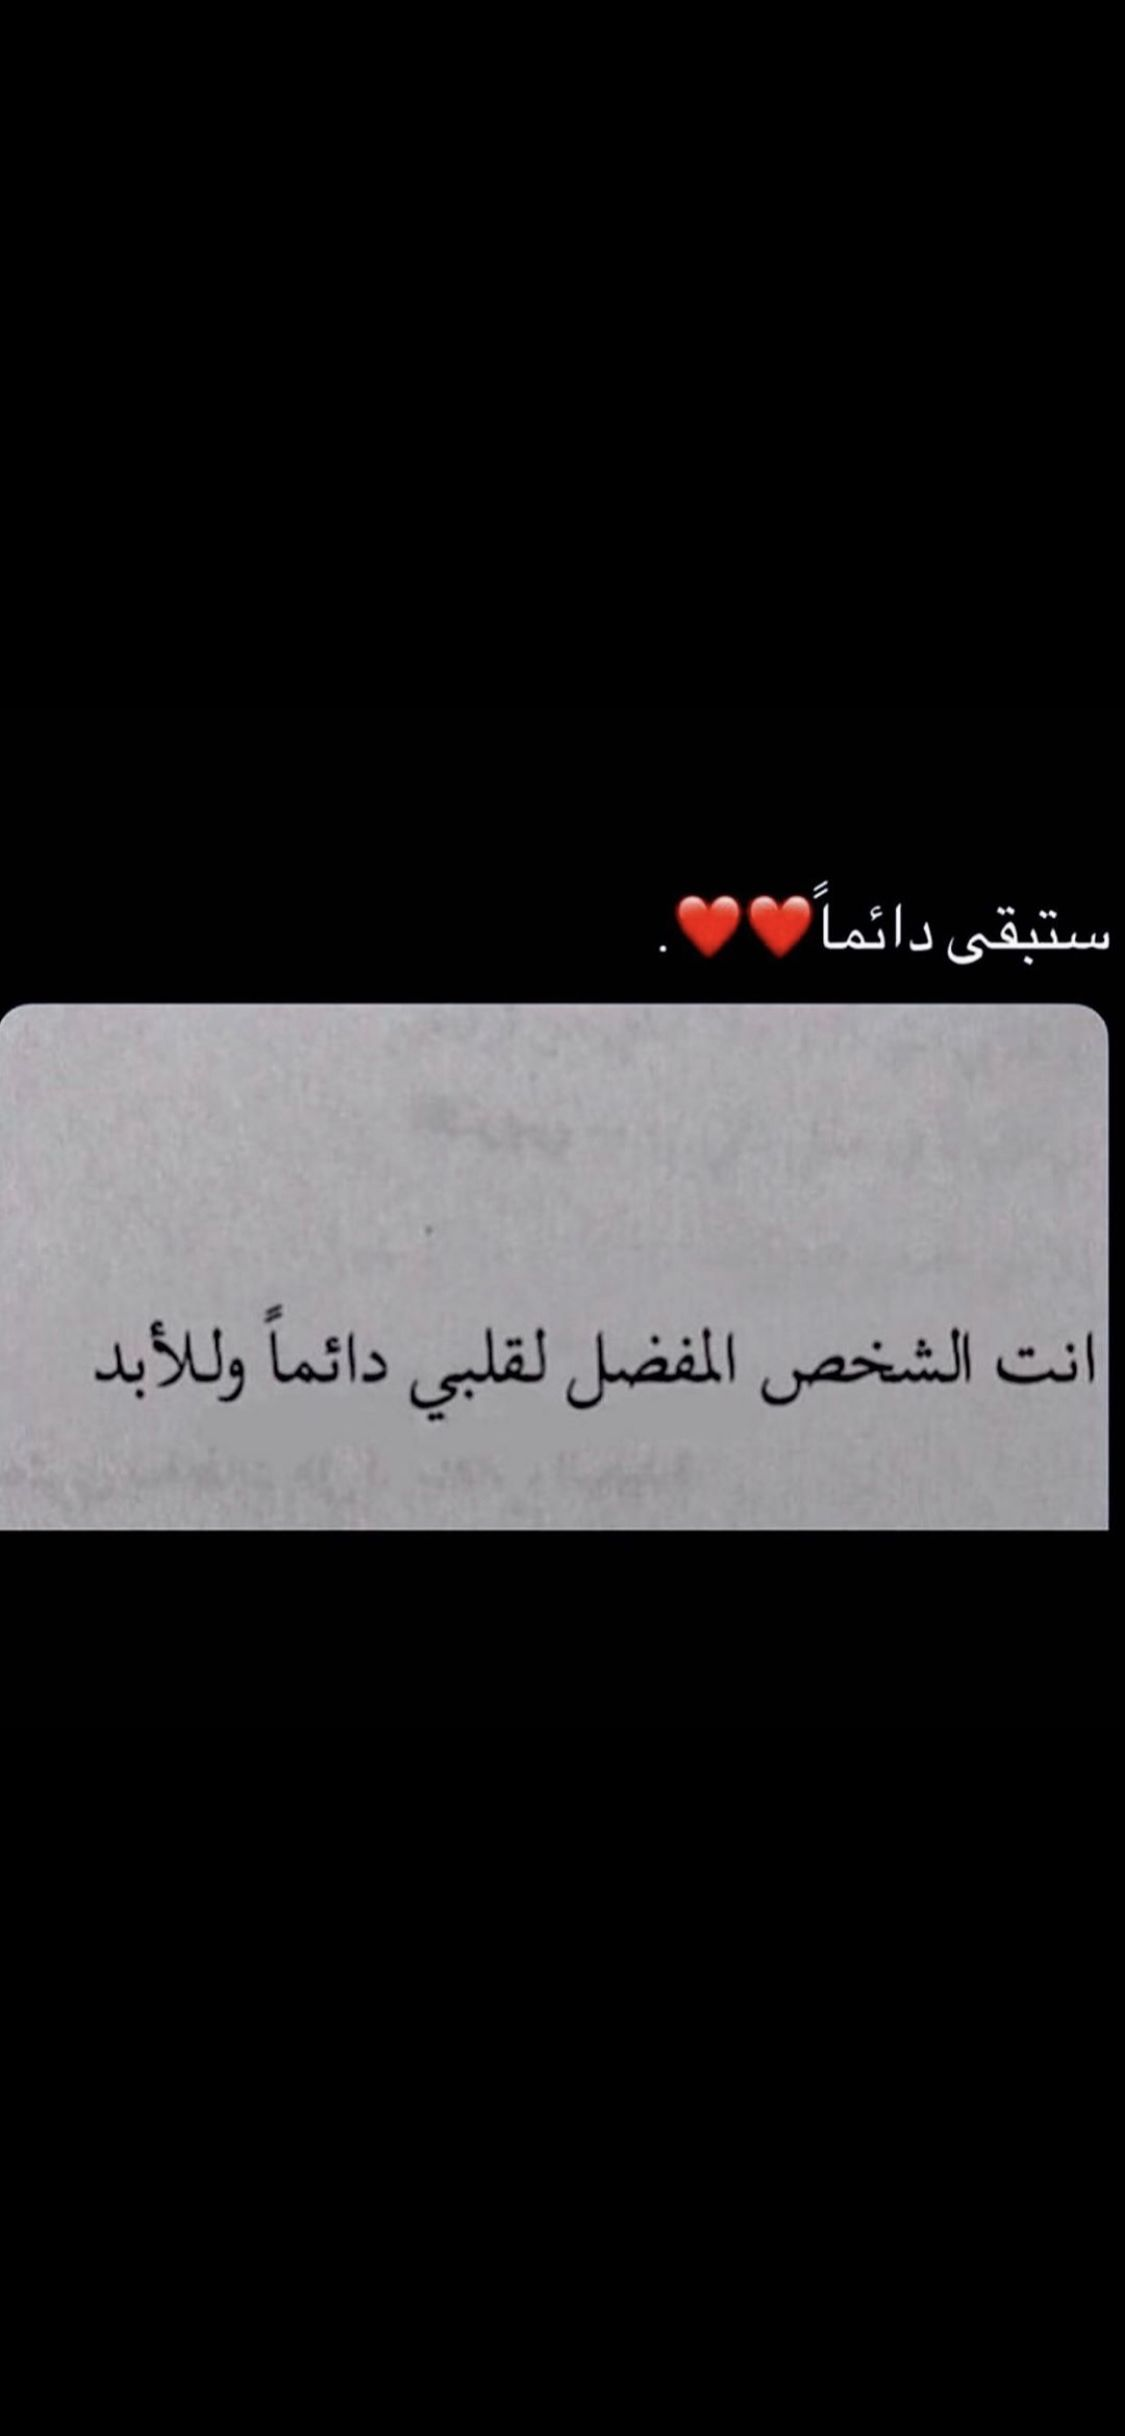 Pin By وحيده كالقمر On ١٤ إبريل ٢٠١٨ Love Husband Quotes Funny Quotes Kindness Quotes